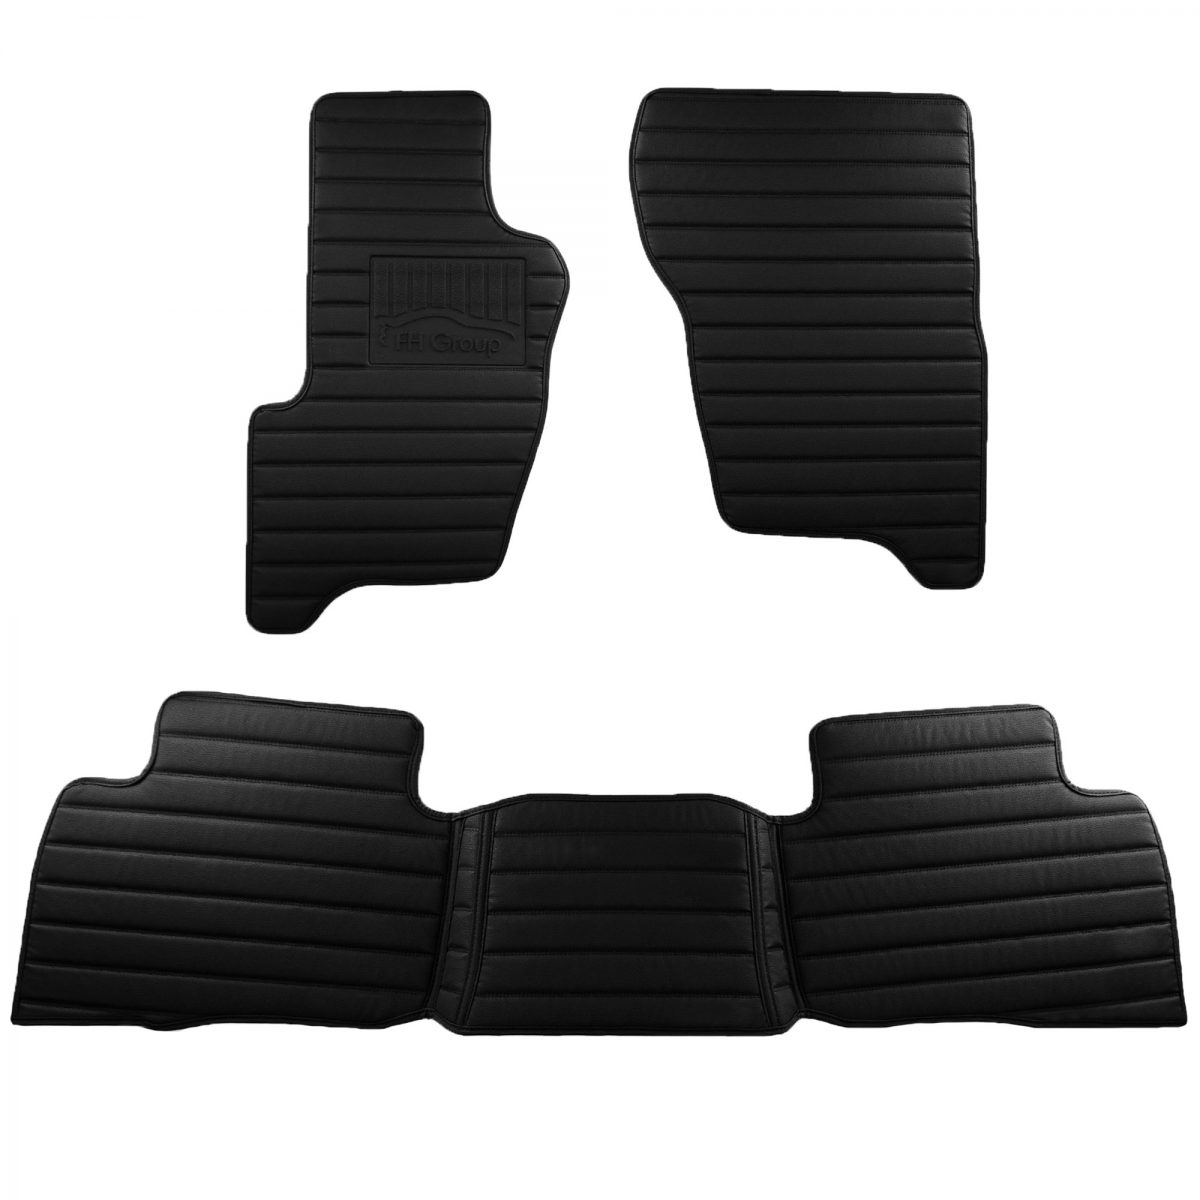 Land Rover Discovery 2009-2016 Custom-Fit Heavy-Duty Faux Leather Car Floor Mats 5